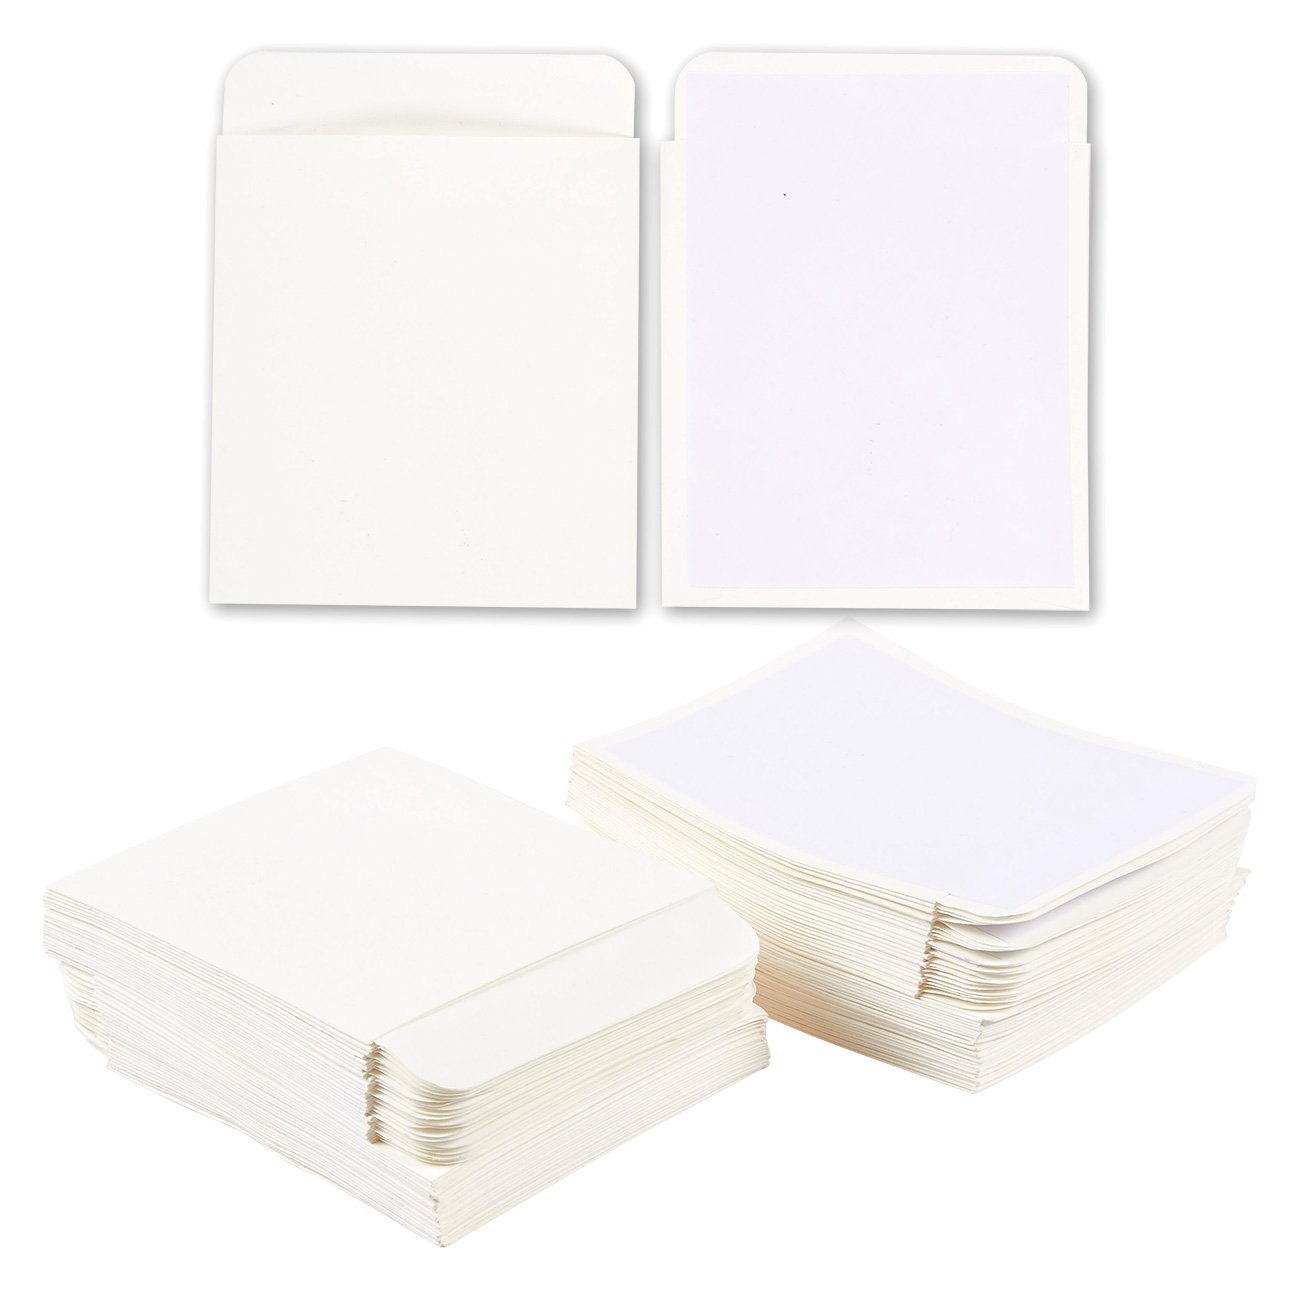 100-Count Library Card Pockets - Self Adhesive Book Pockets, Library Card Holders, White, 3.5 x 4.5 Inches